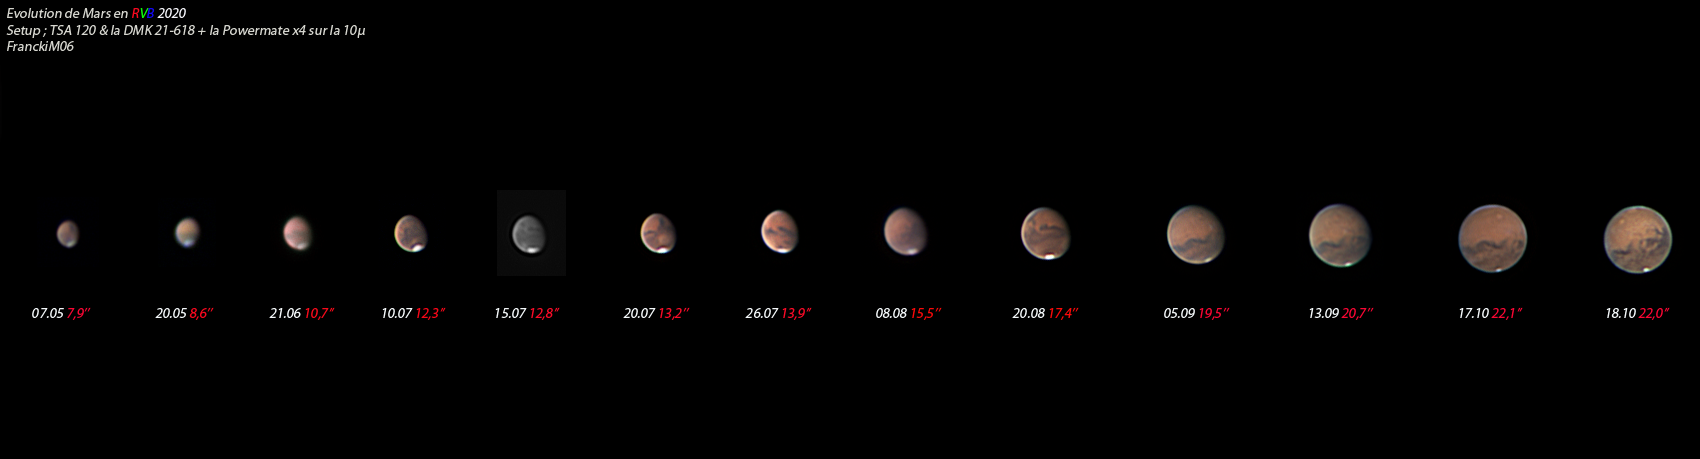 Evolution de Mars en 2020.png